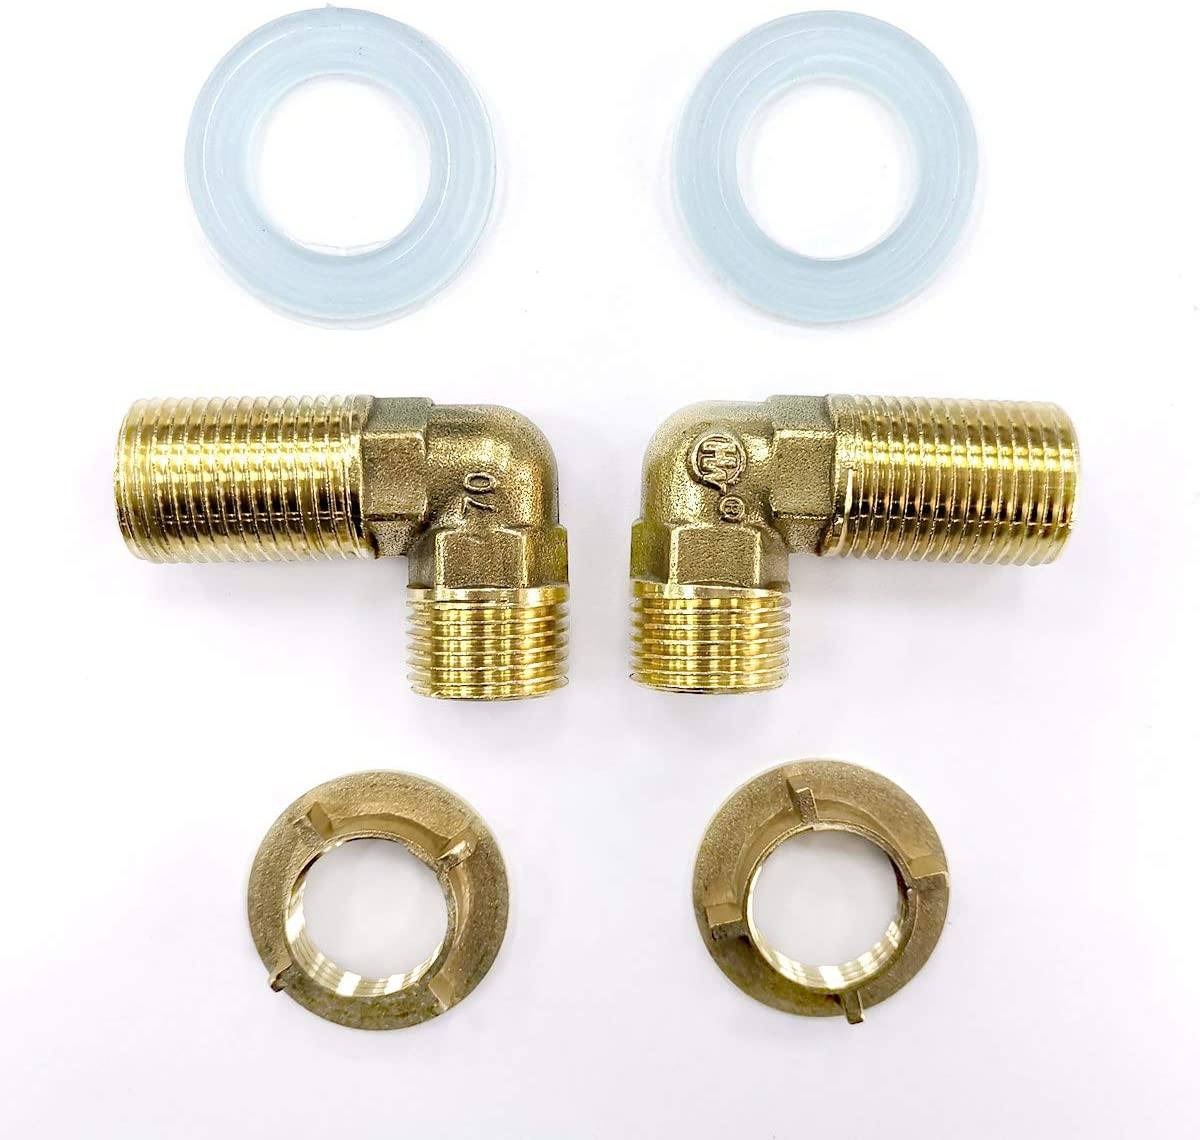 - Installation Kit For Wall Mount Faucet Backsplash Mounted Faucets